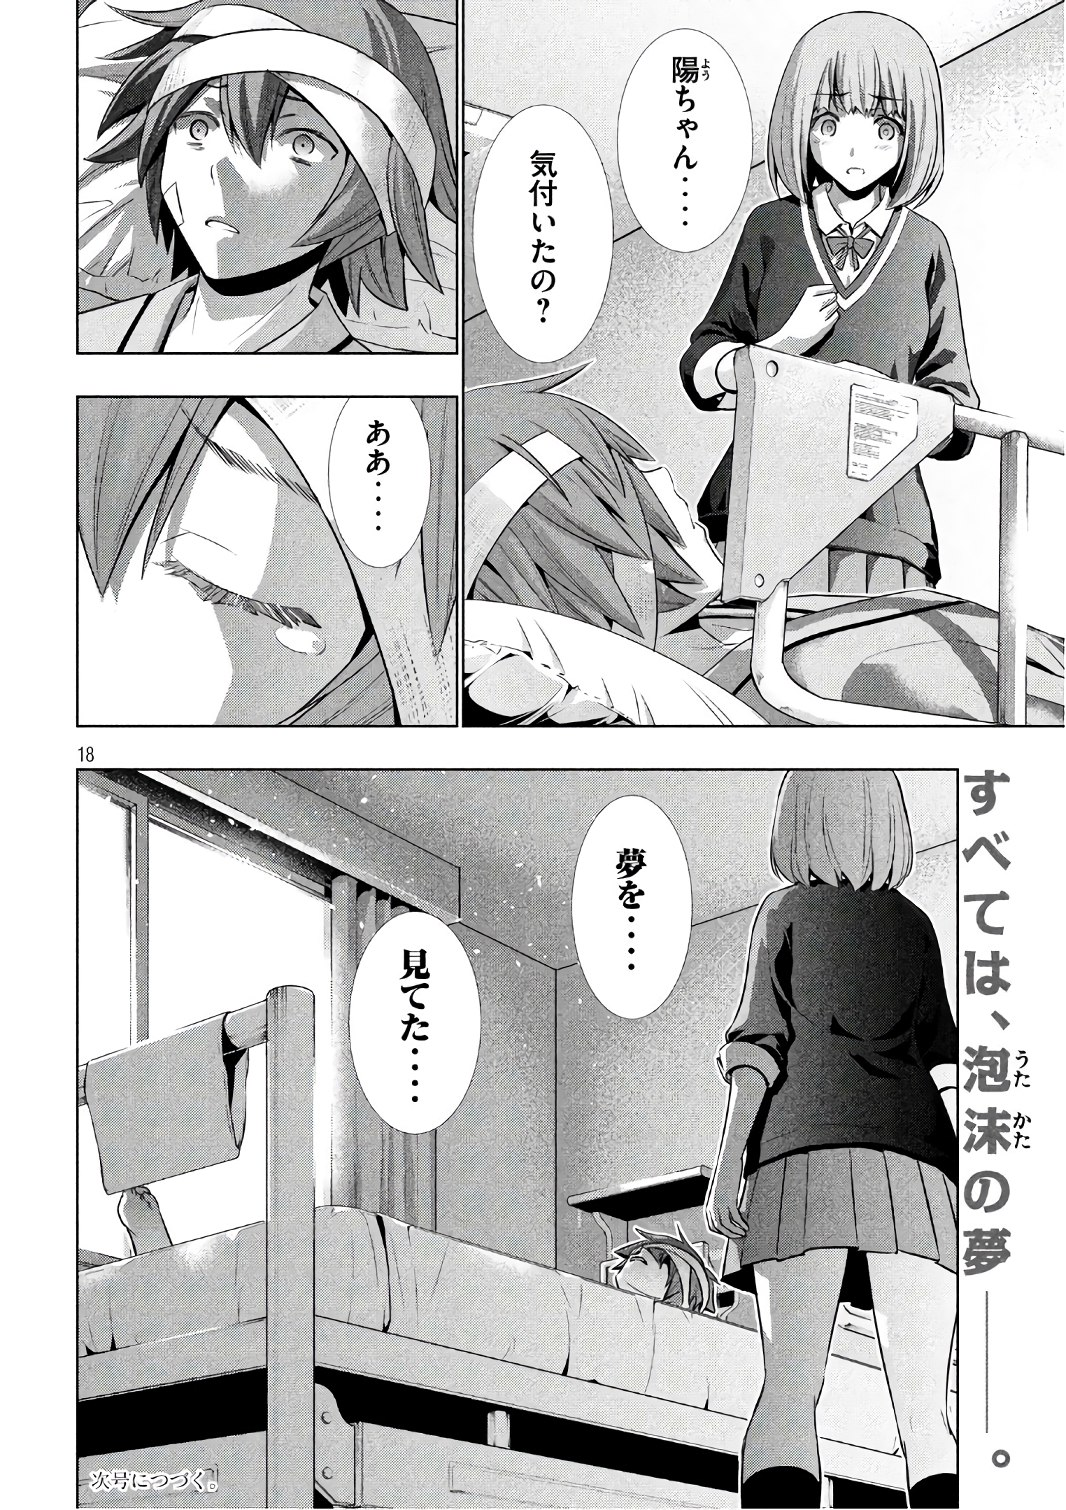 Parallel Paradise - Raw Chapter 48 - RawFF.Com